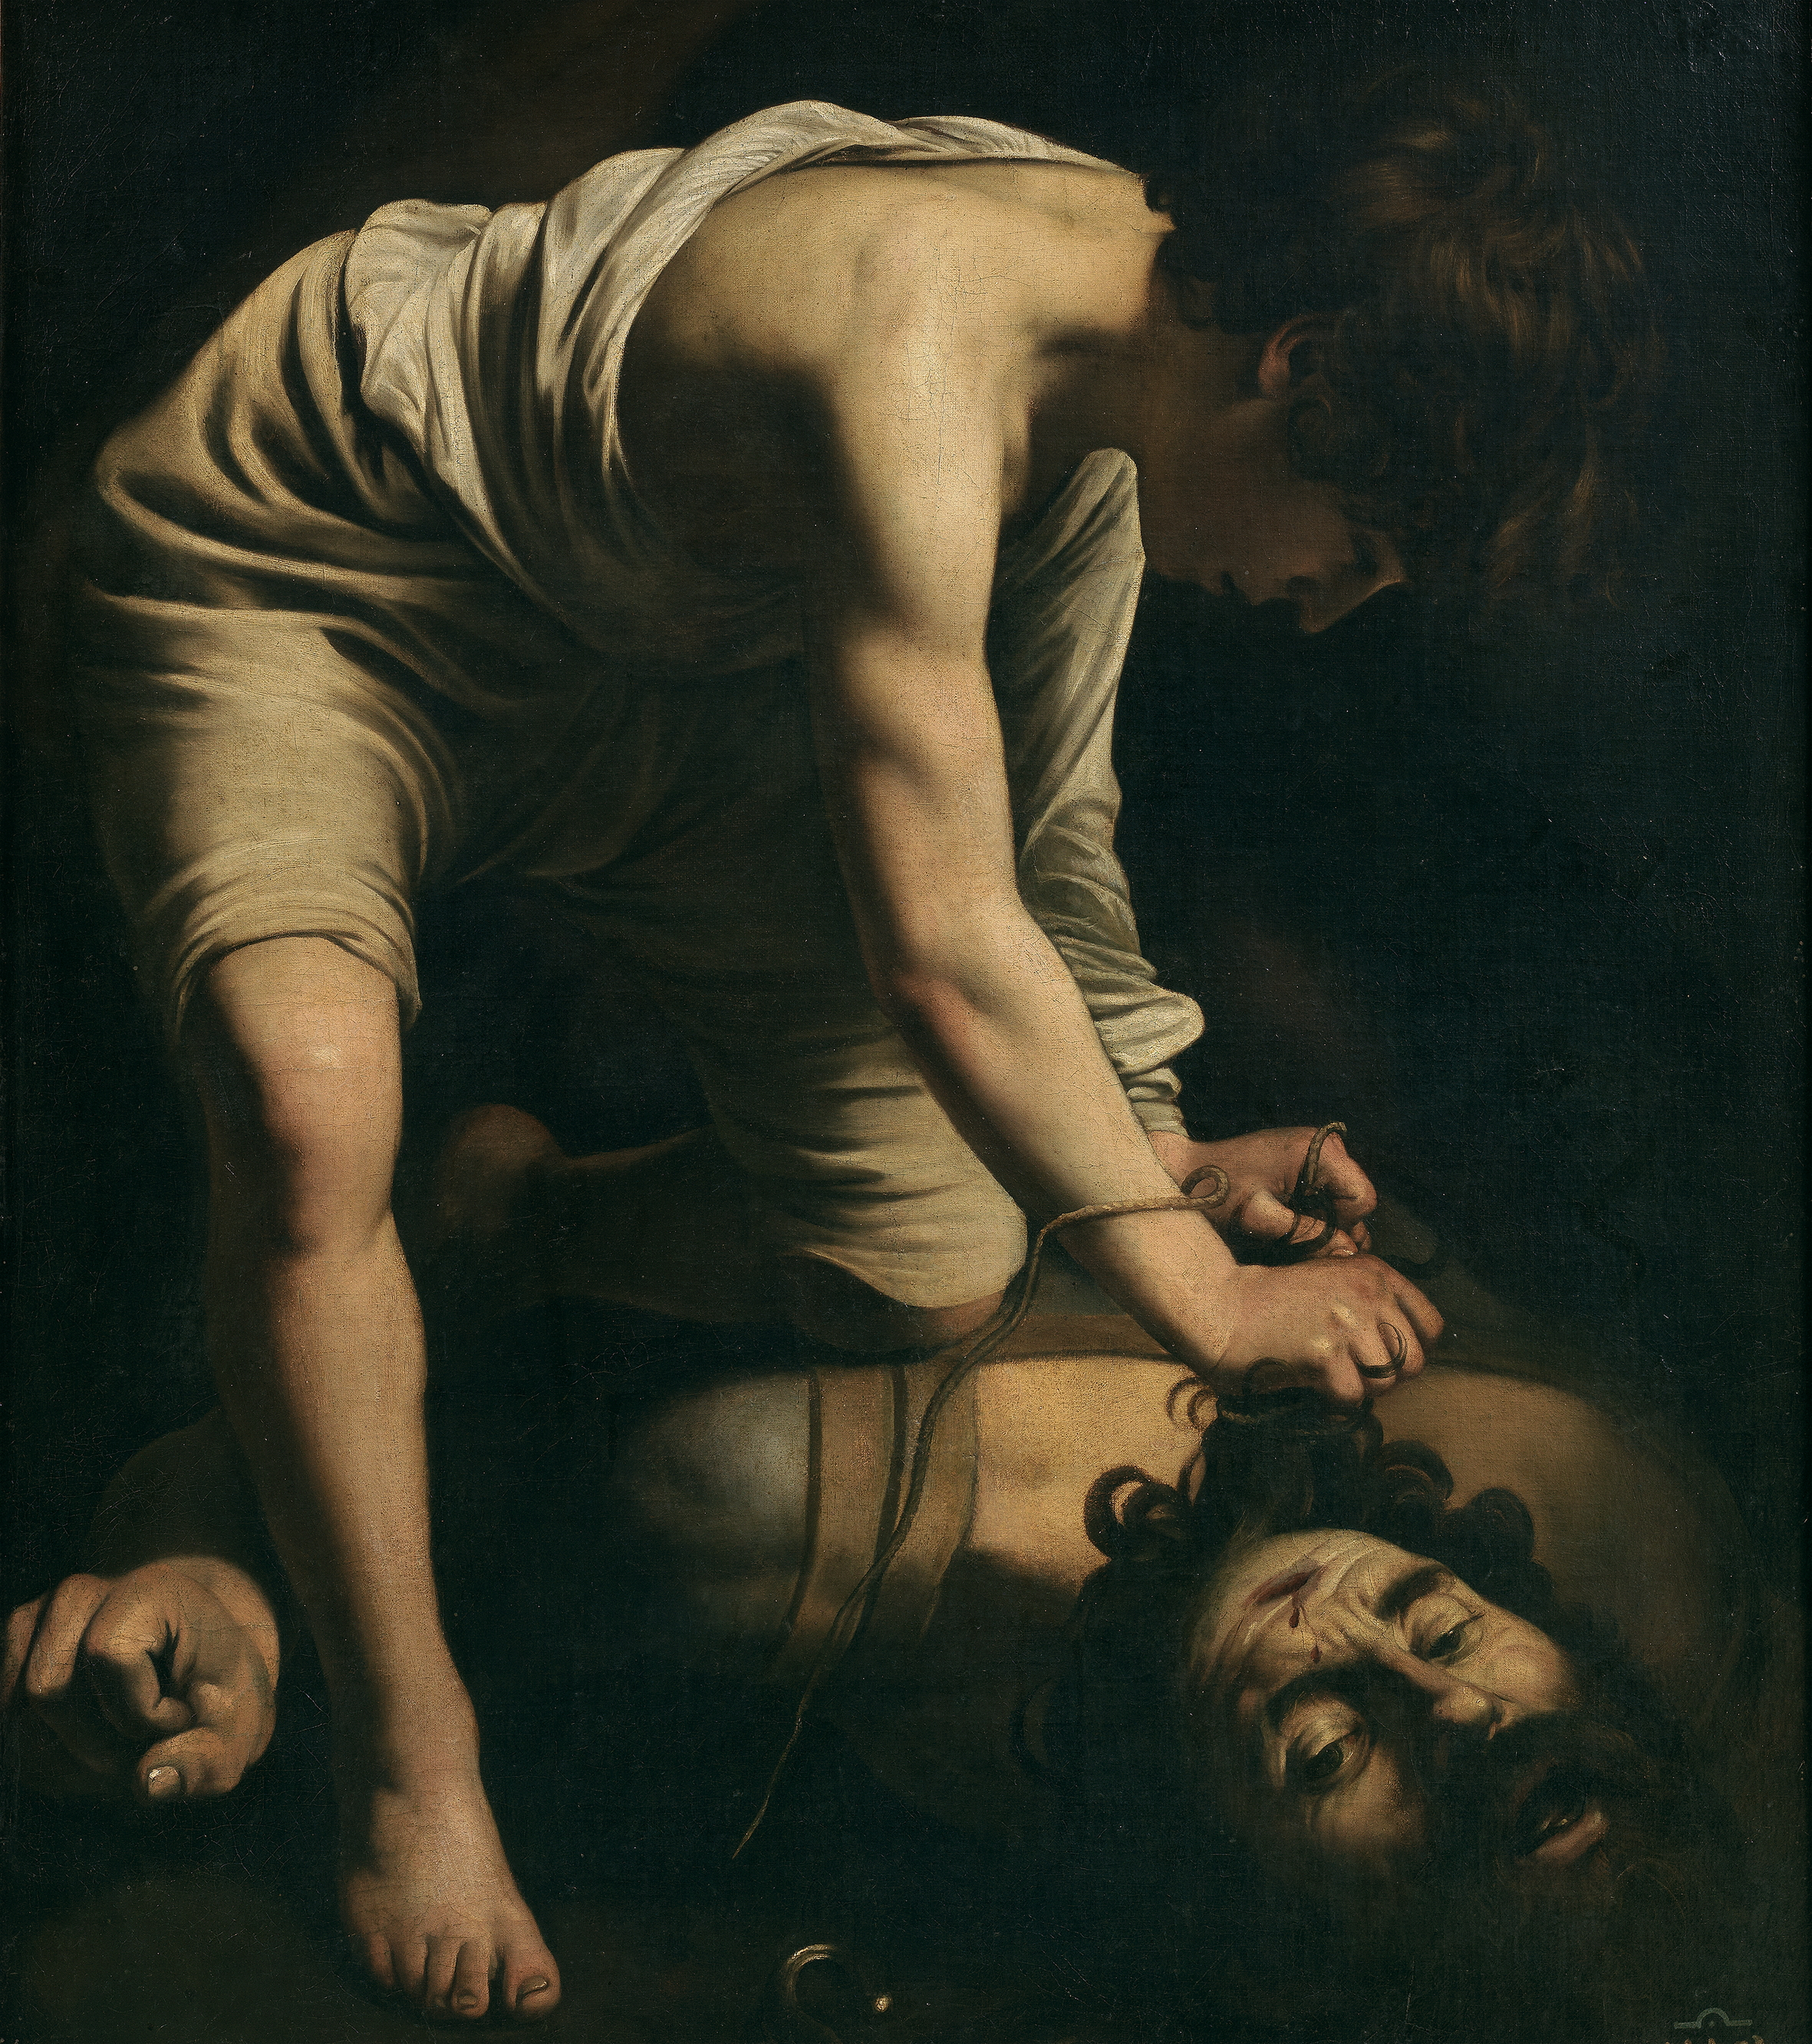 David and Goliath by Caravaggio